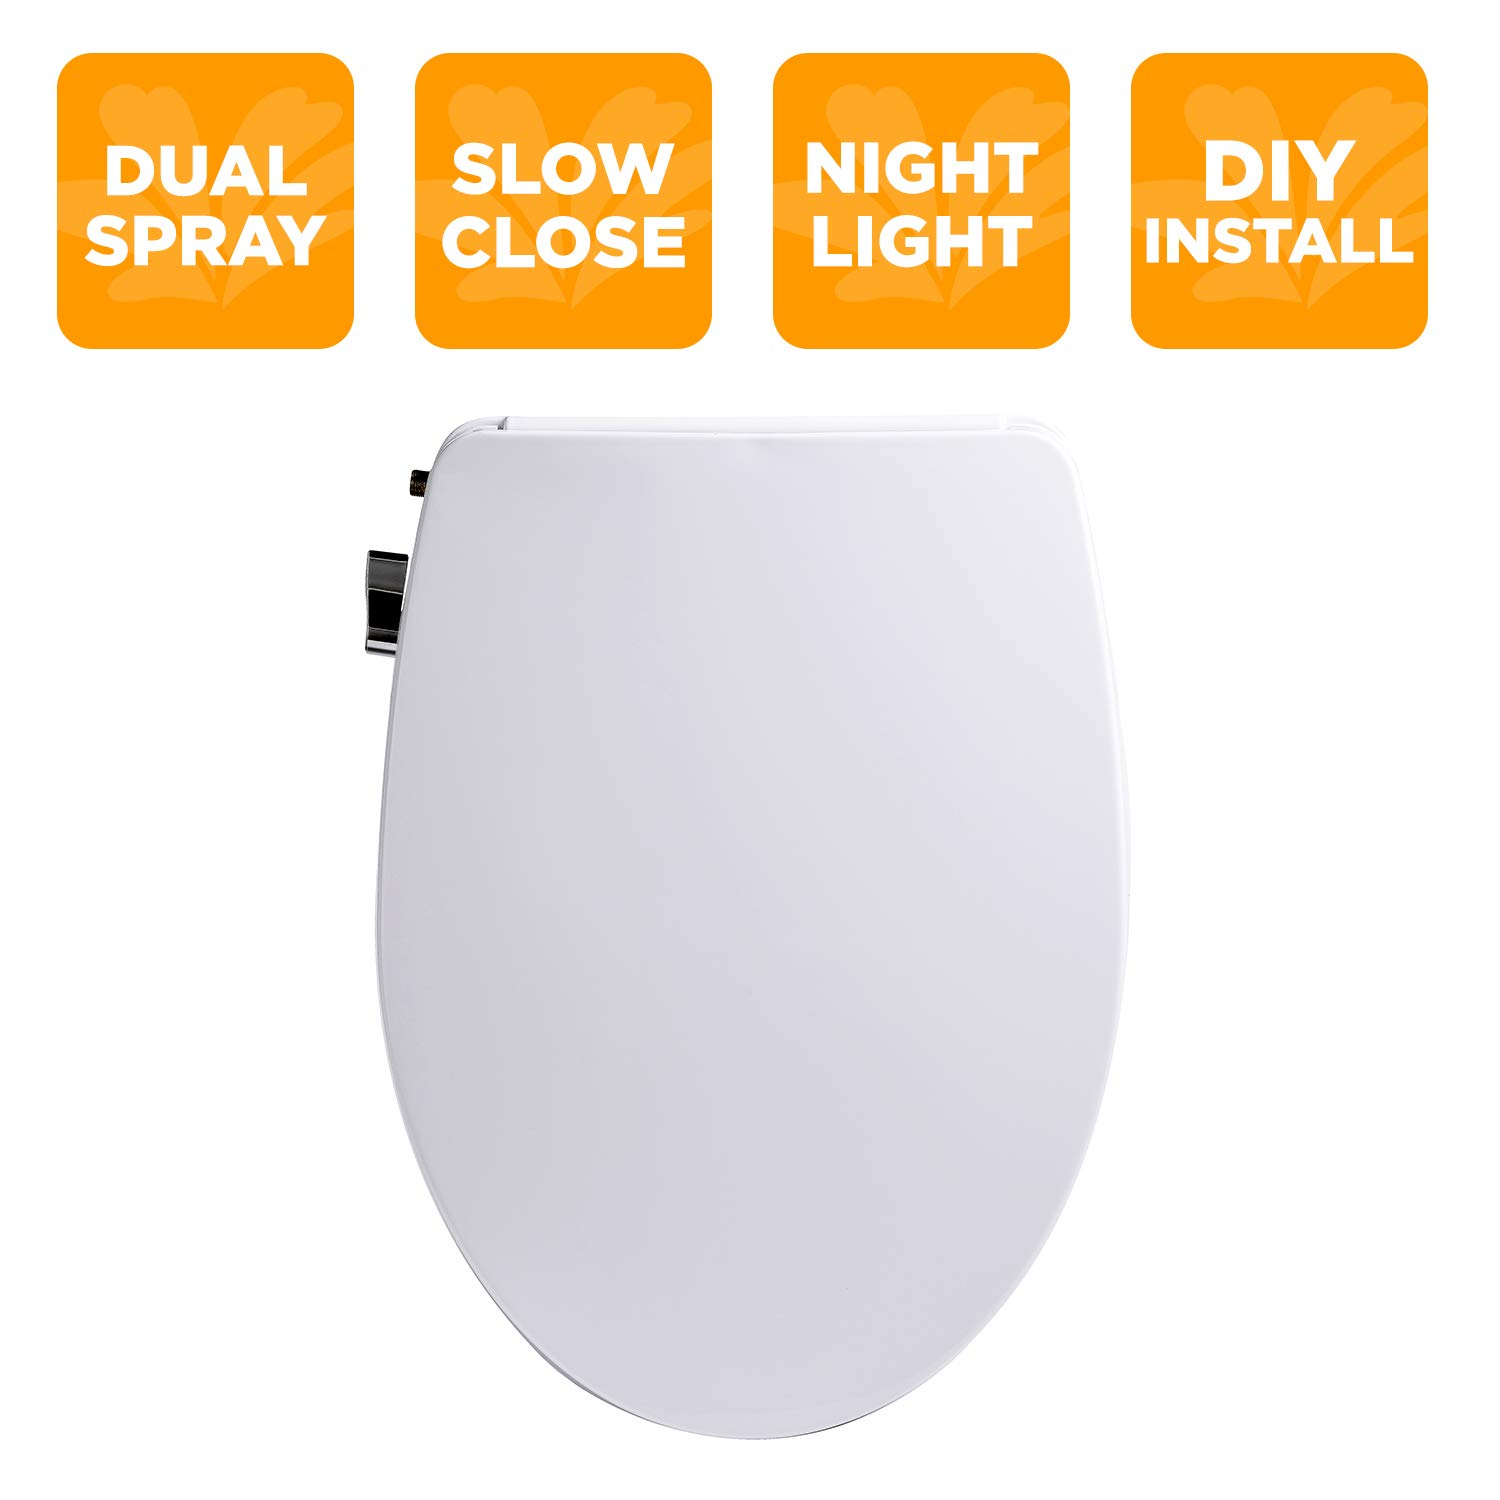 Bio Bidet Slim Zero-Non Electric Bidet Seat for Elongated Toilet, Dual Nozzle, Nightlight, Unified Brass, Inlet and T-Valve-Easy to use Chrome Plated Side Lever DIY Installation, White